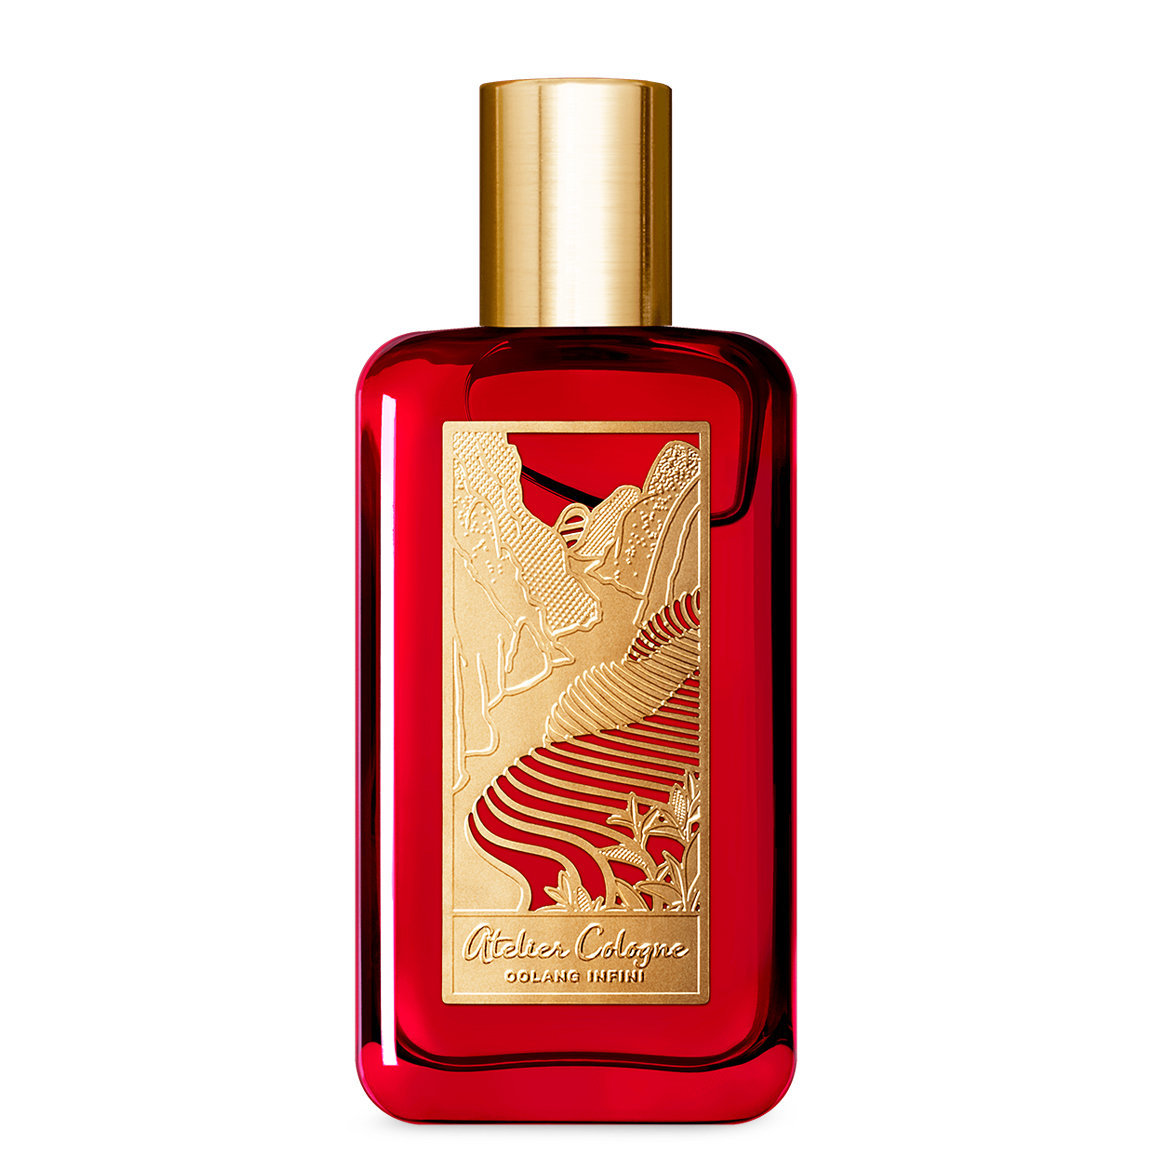 Atelier Cologne Oolang Infini Lunar New Year Edition alternative view 1 - product swatch.